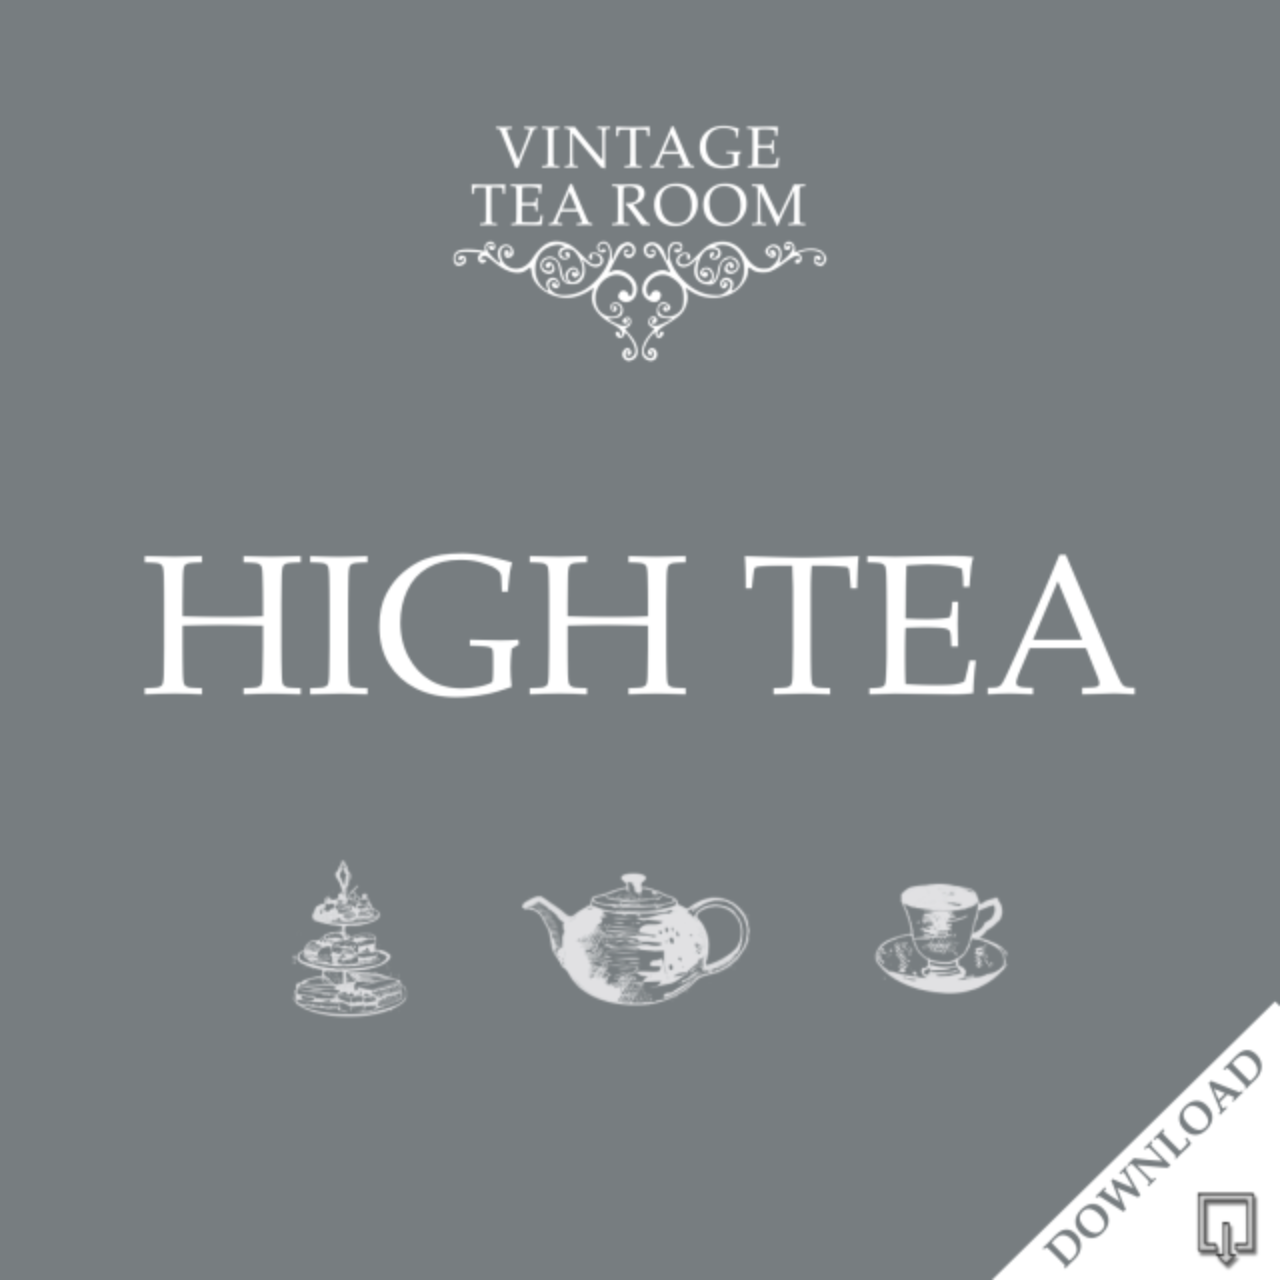 Vintage High Tea For Two - Downloadable Voucher